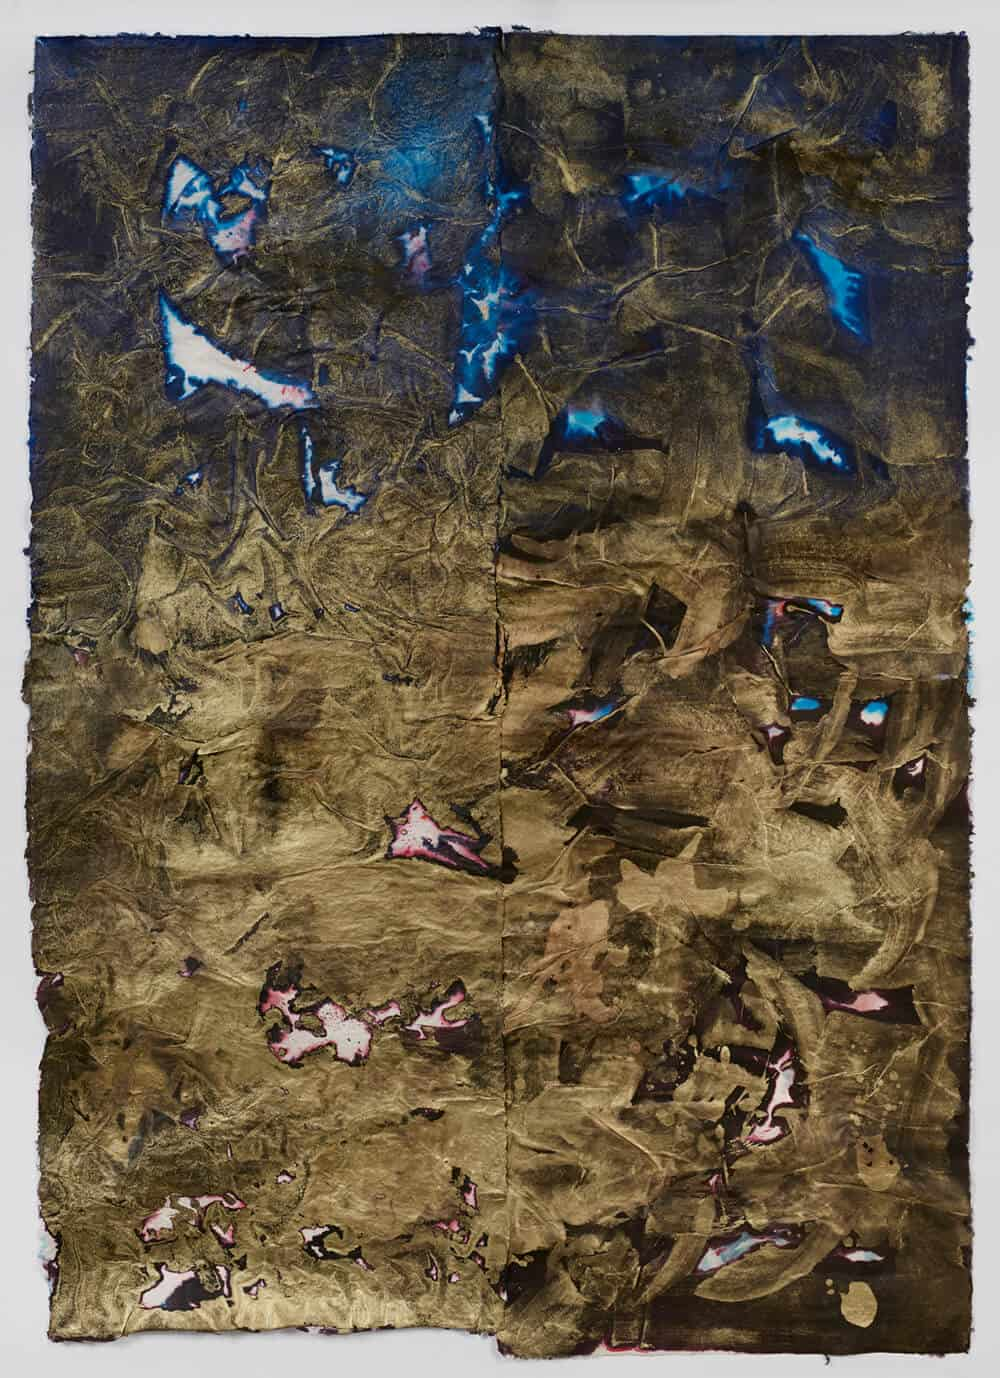 Bevan de Wet, Untitled (Undertow II), 2017. Handmade Sisal paper with ink, dye and gold pigment, 167x118cm. Courtesy of the artist & Berman Contemporary.